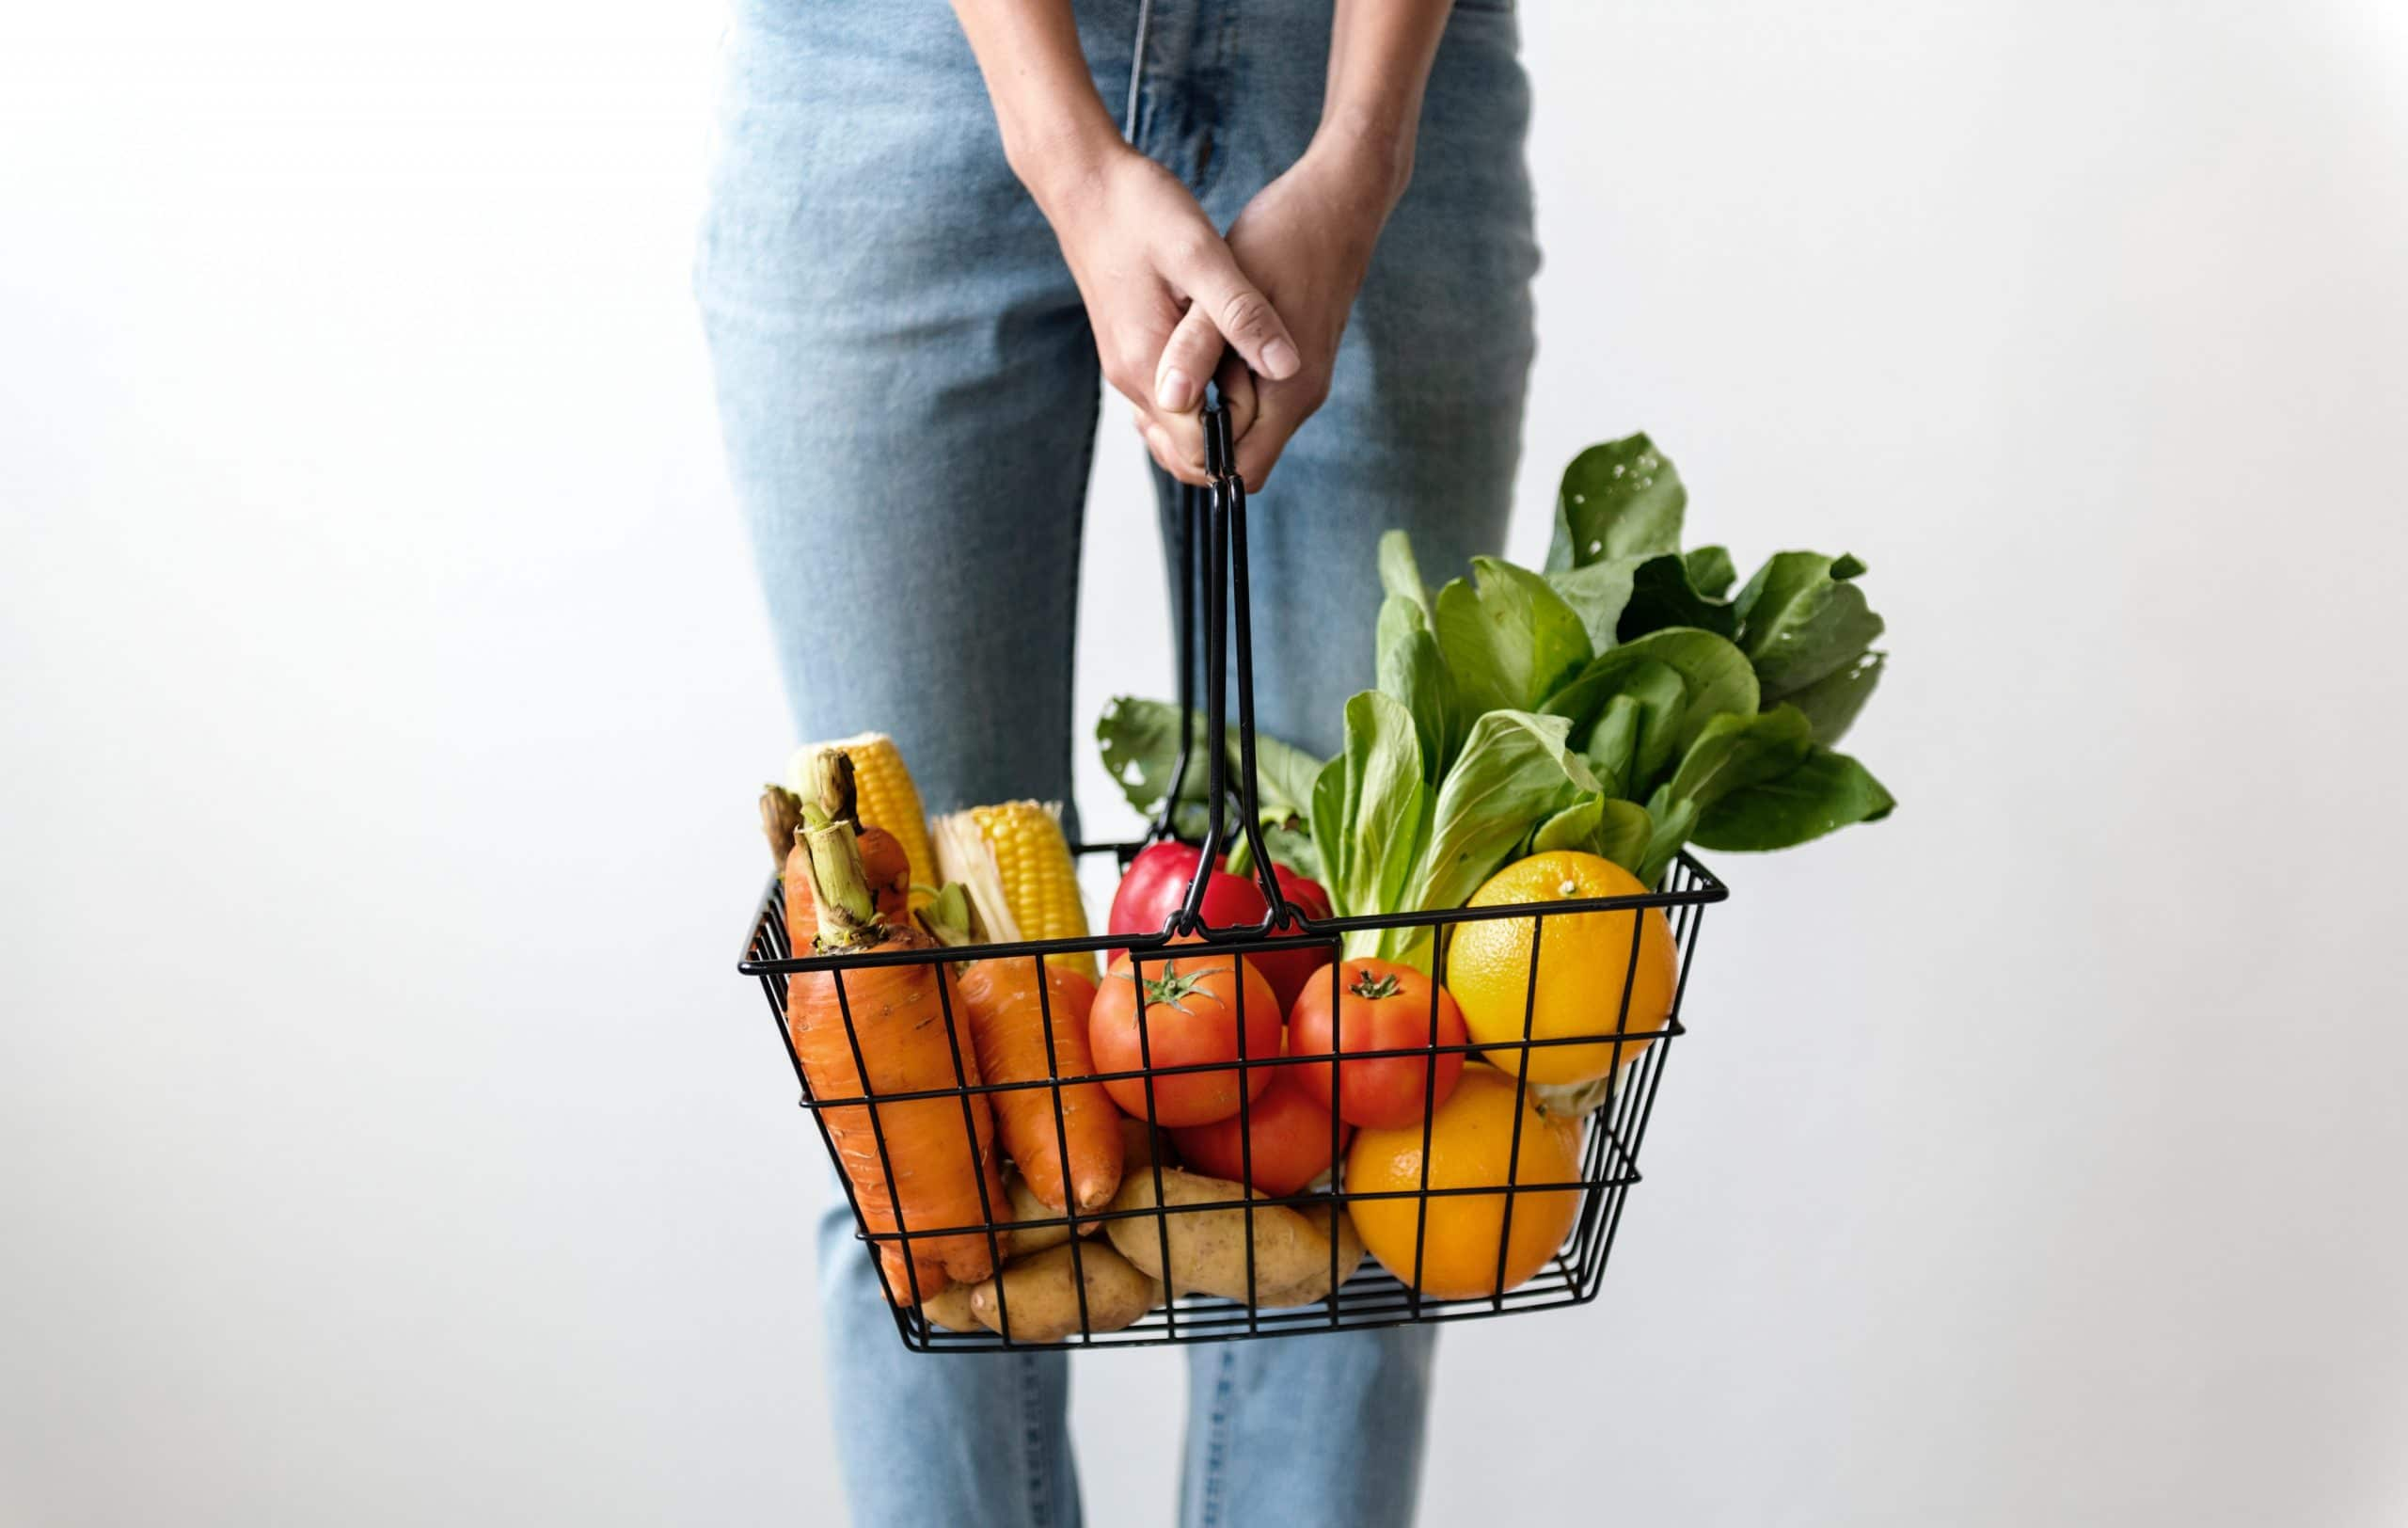 woman carrying a basket of fresh produce